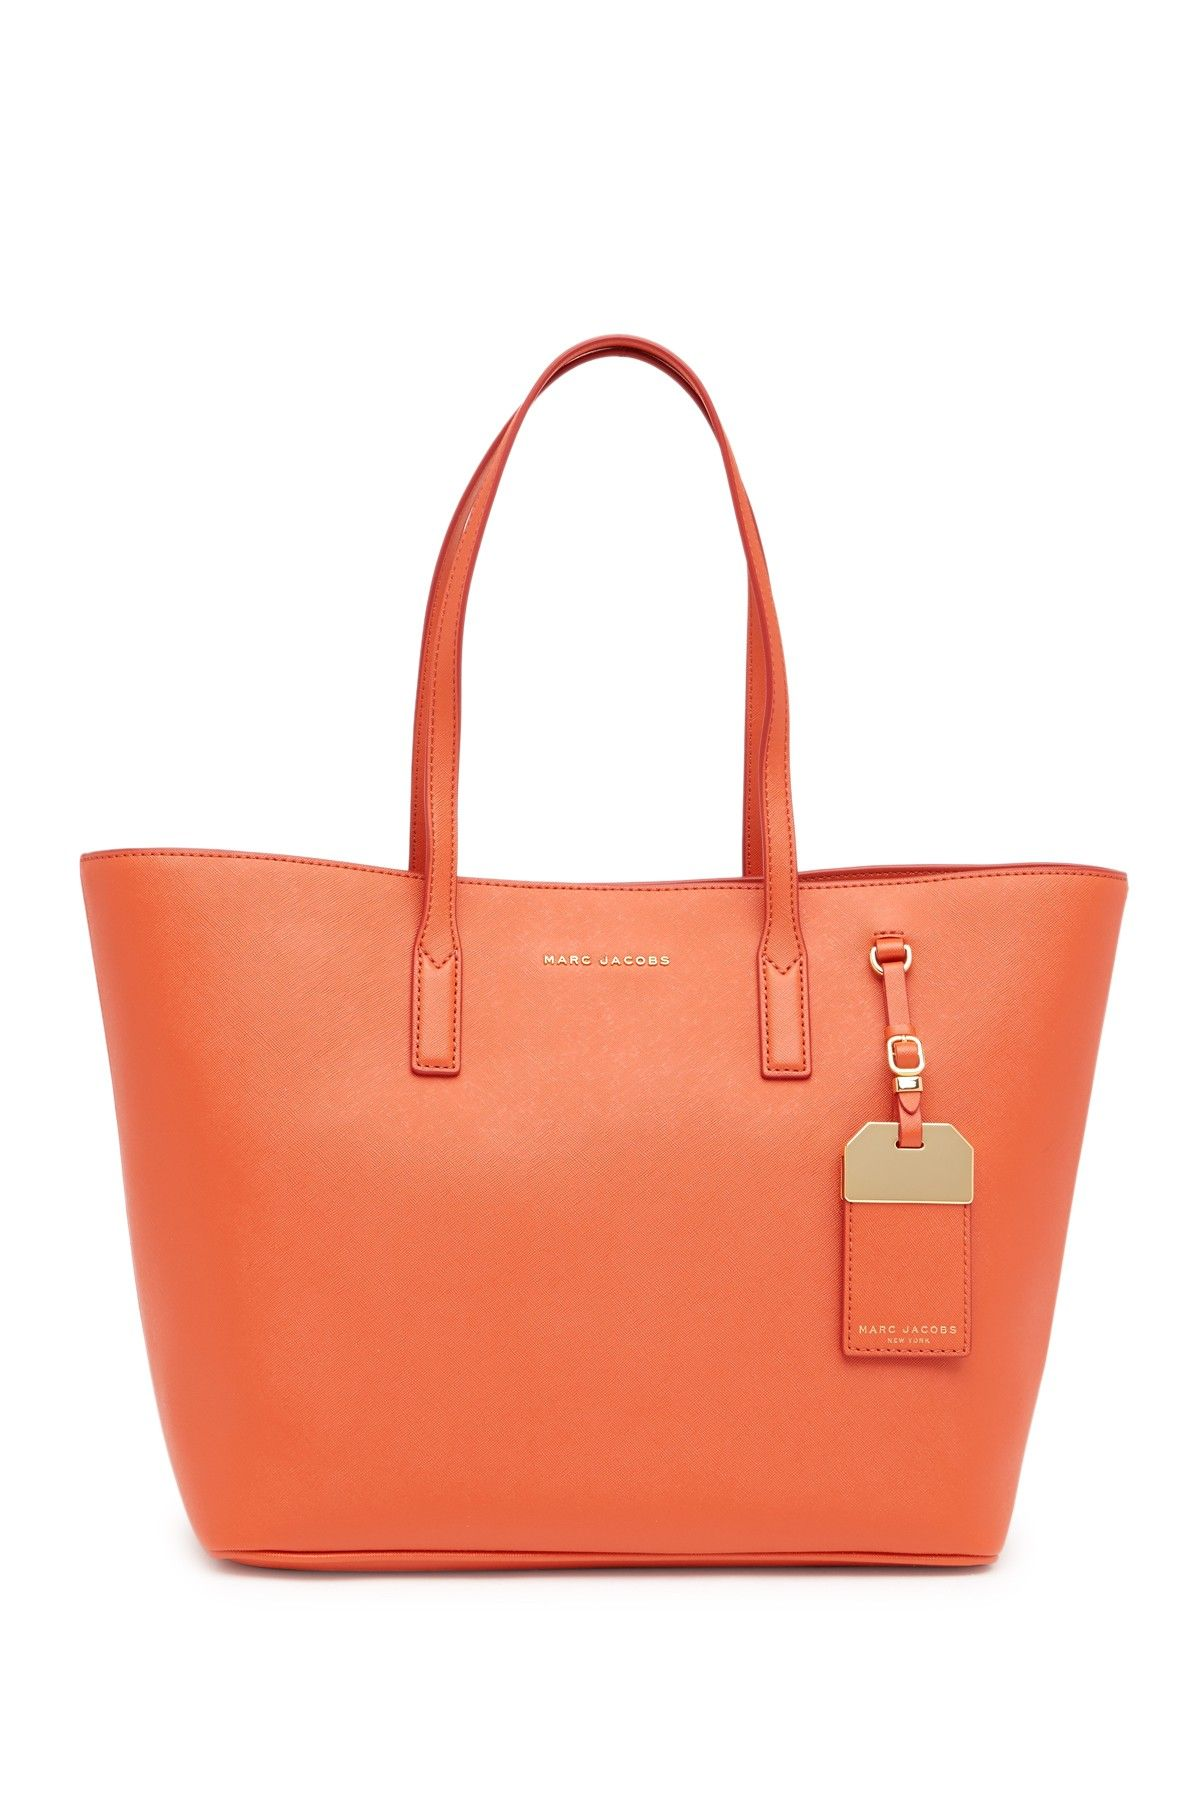 3468a0bcf94b Leather Tag Tote Bag by Marc Jacobs on  nordstrom rack  149.97 ...